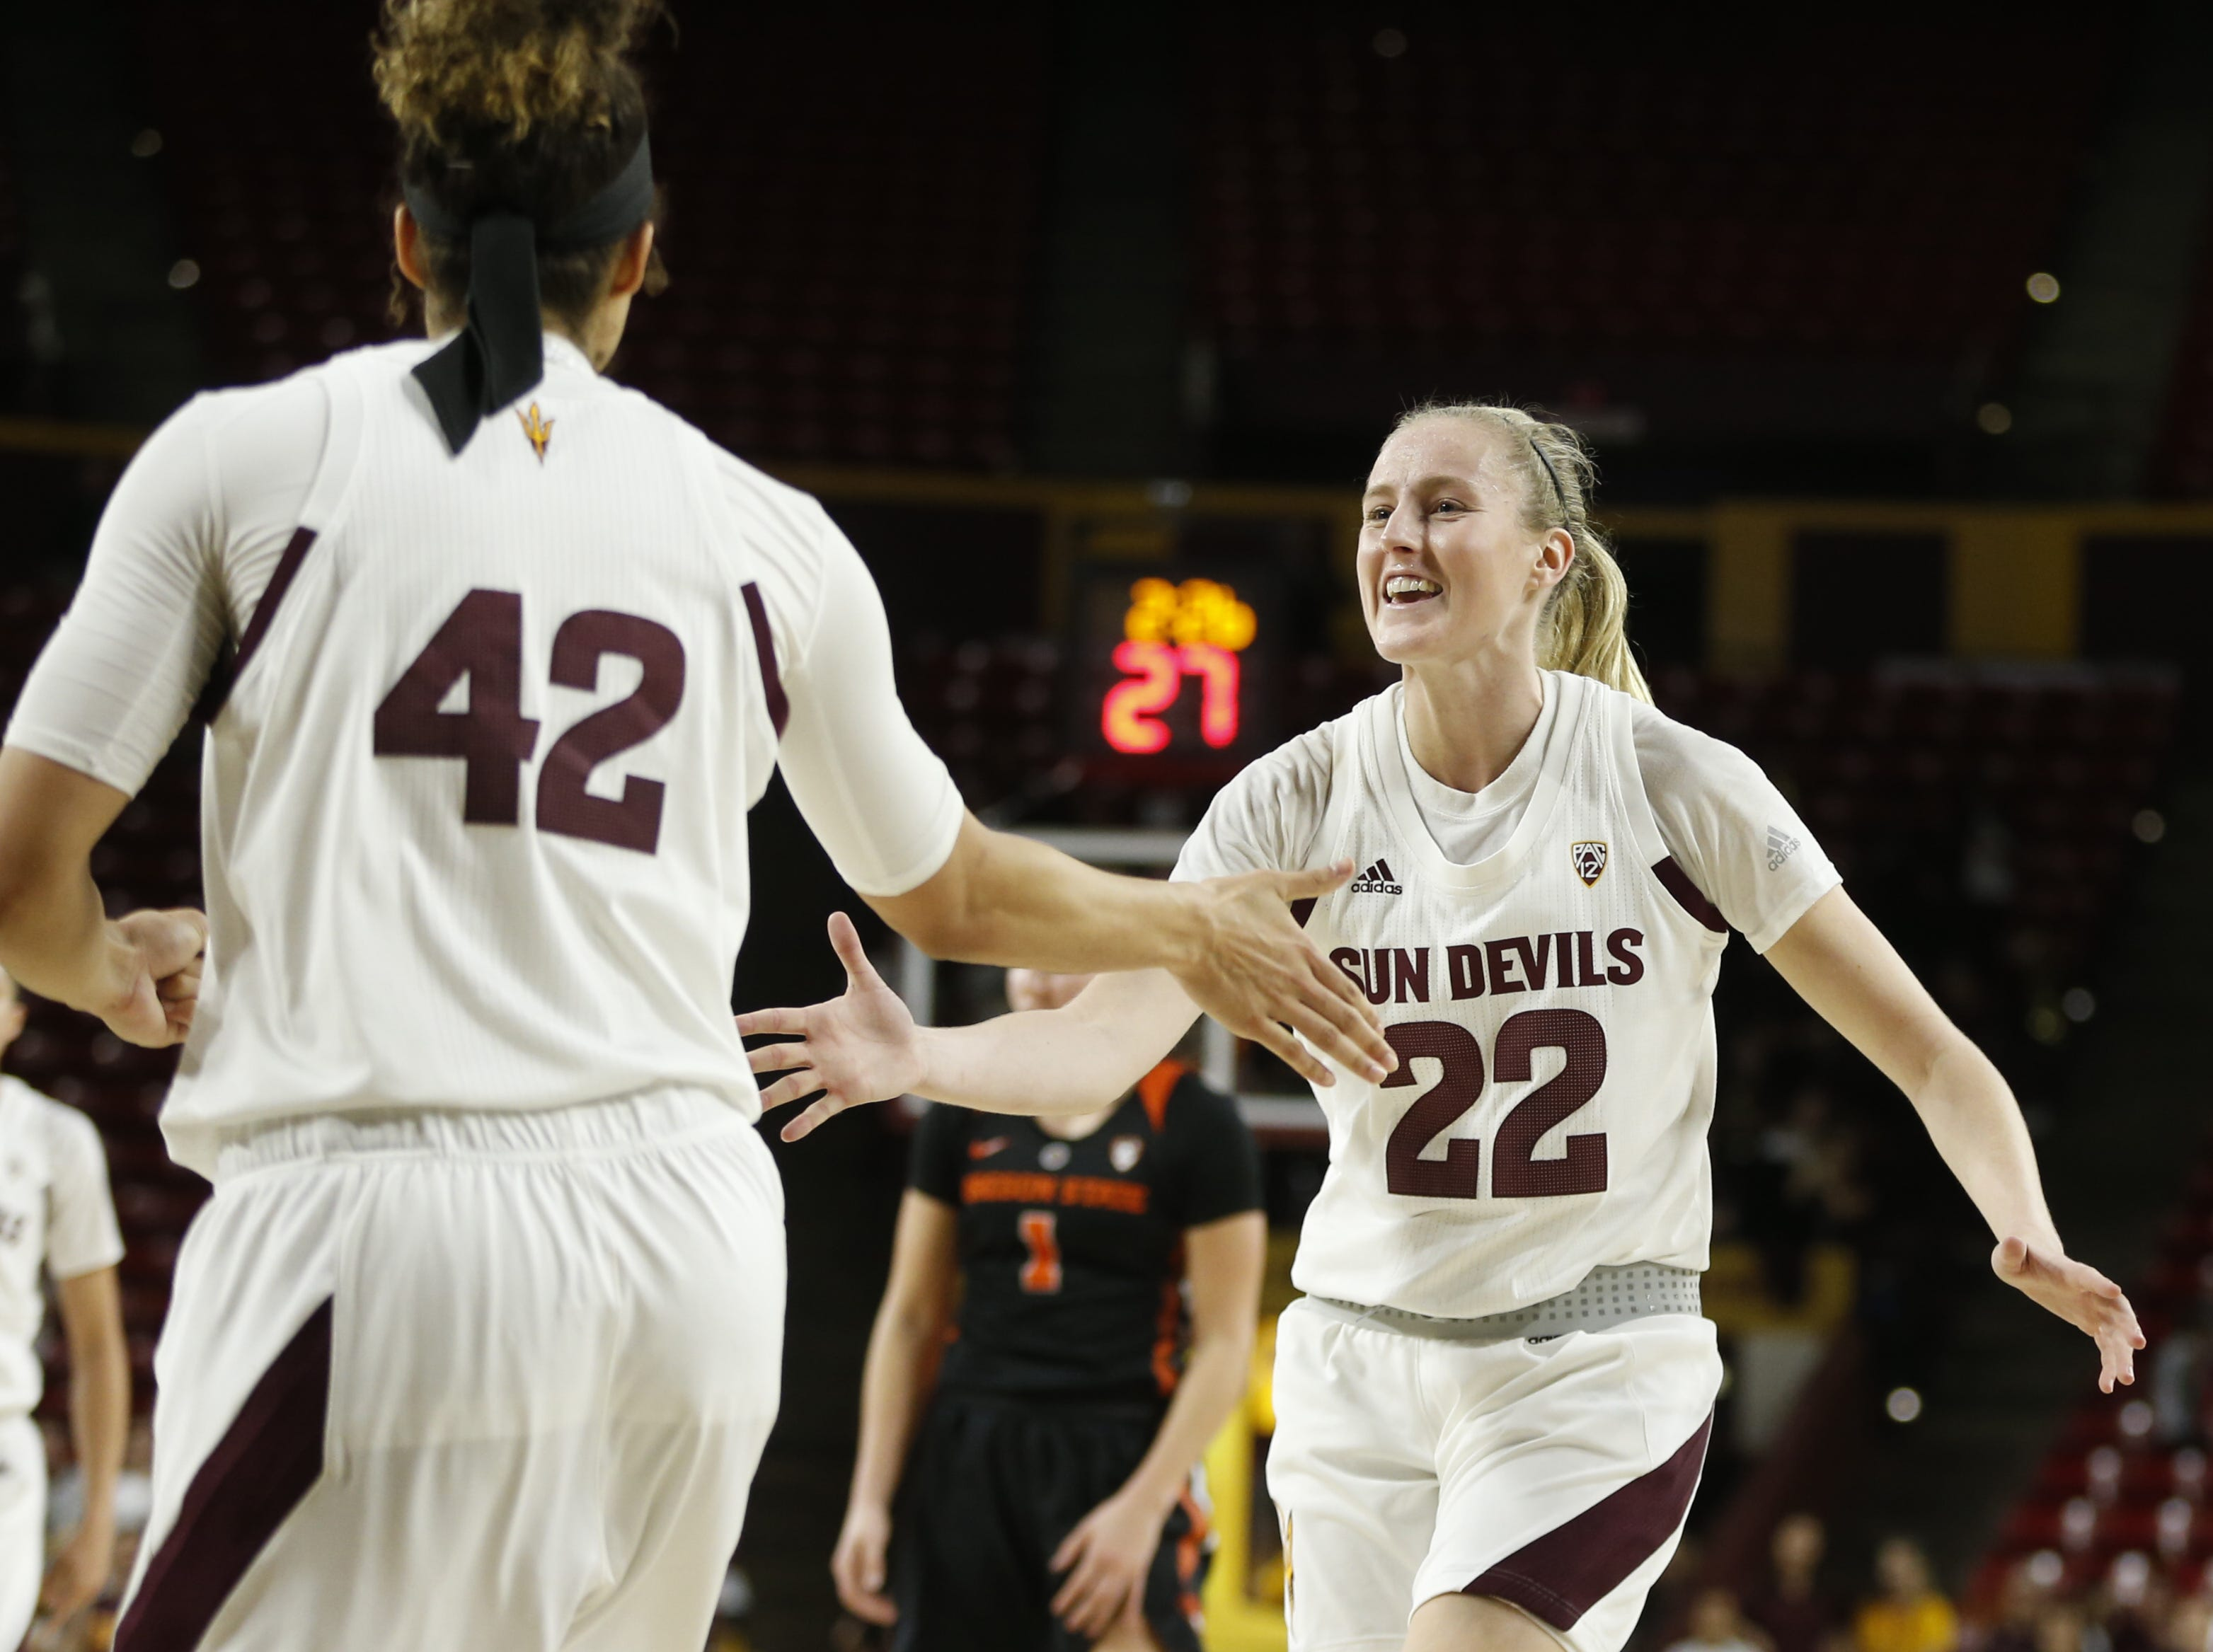 ASU's Courtney Ekmark (22) celebrates with Kianna Ibis (42) after Ibis scored and drew a foul against Oregon State during the second half at Wells Fargo Arena in Tempe, Ariz. on March 1, 2019.